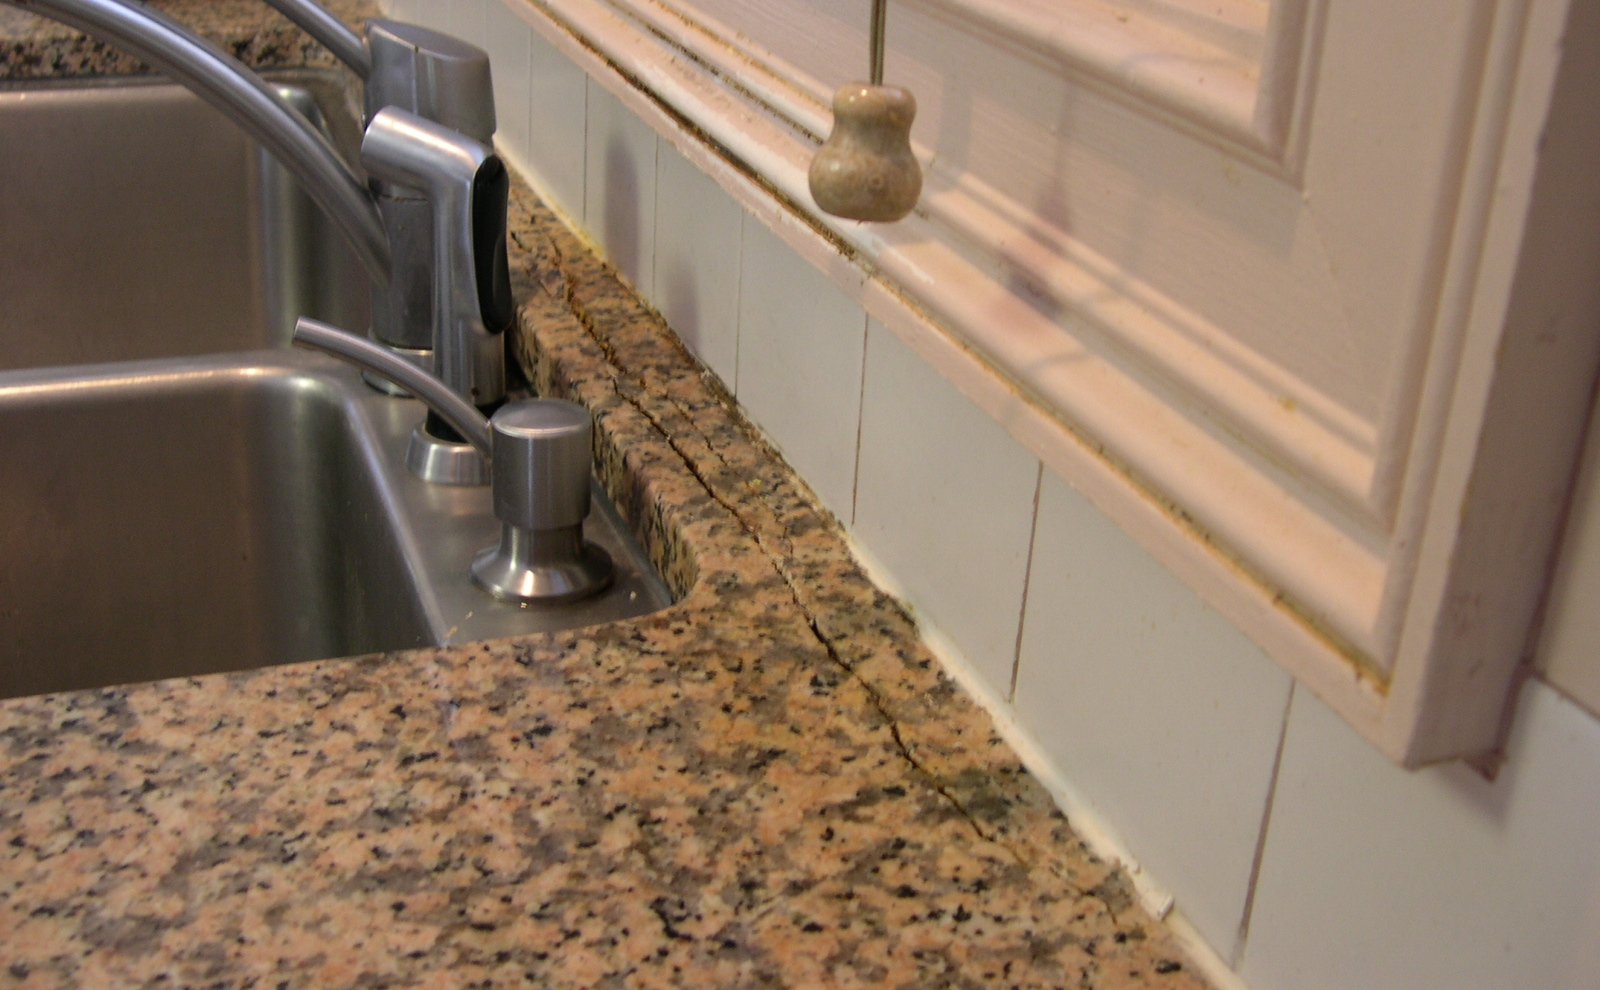 How To Repair Crack In Granite Countertop Restoration Products Maintenance Products Tools And